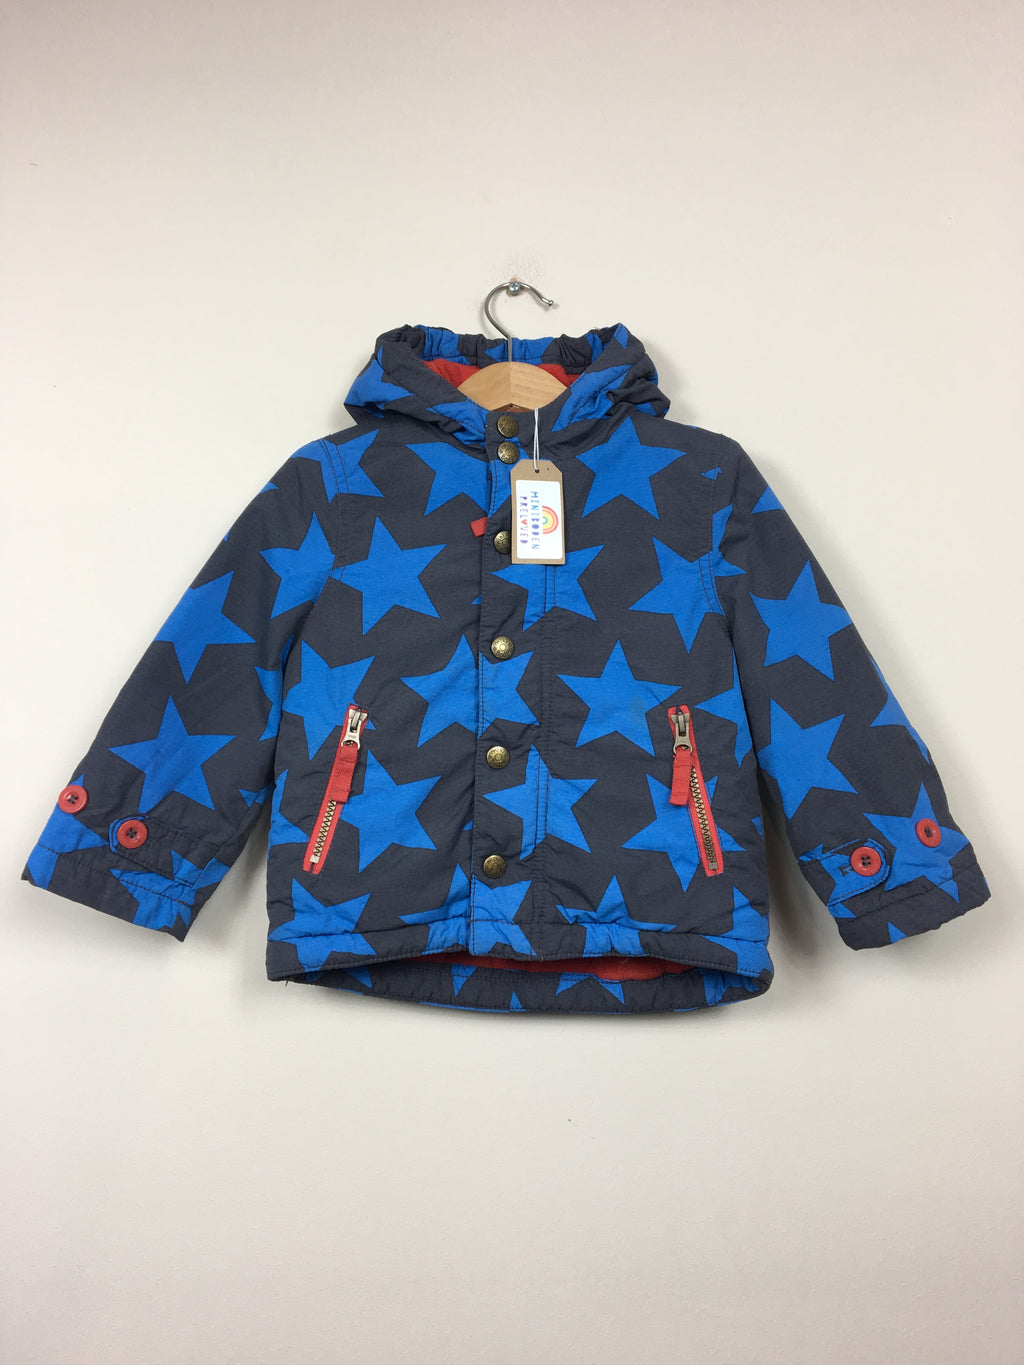 Blue & Red Star Print Fleece Lined Jacket (18-24 Months)